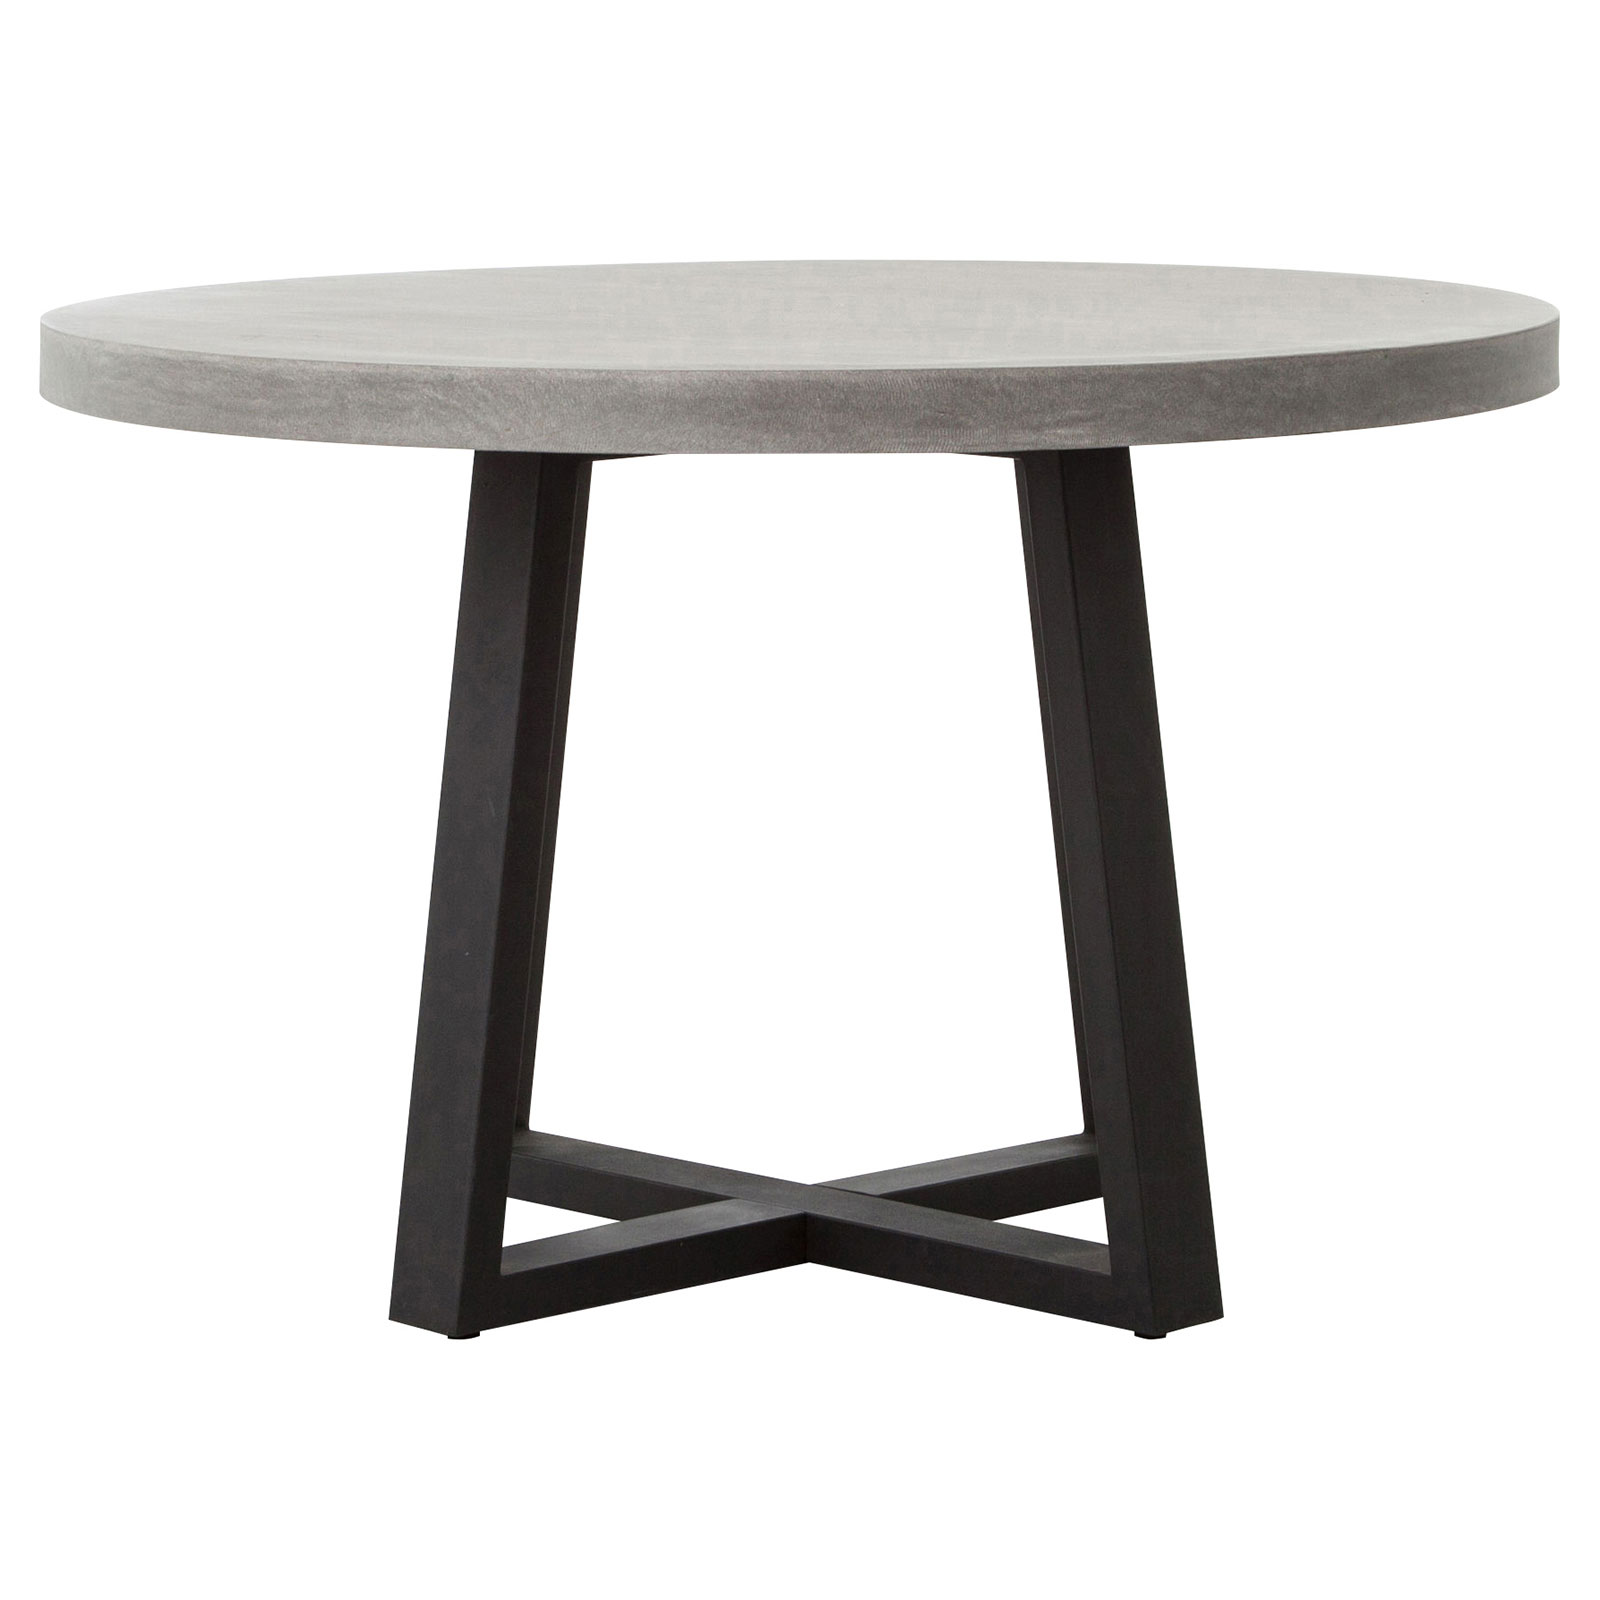 Maceo Modern Classic Round Composite Stone Metal Dining Table - 48 inch